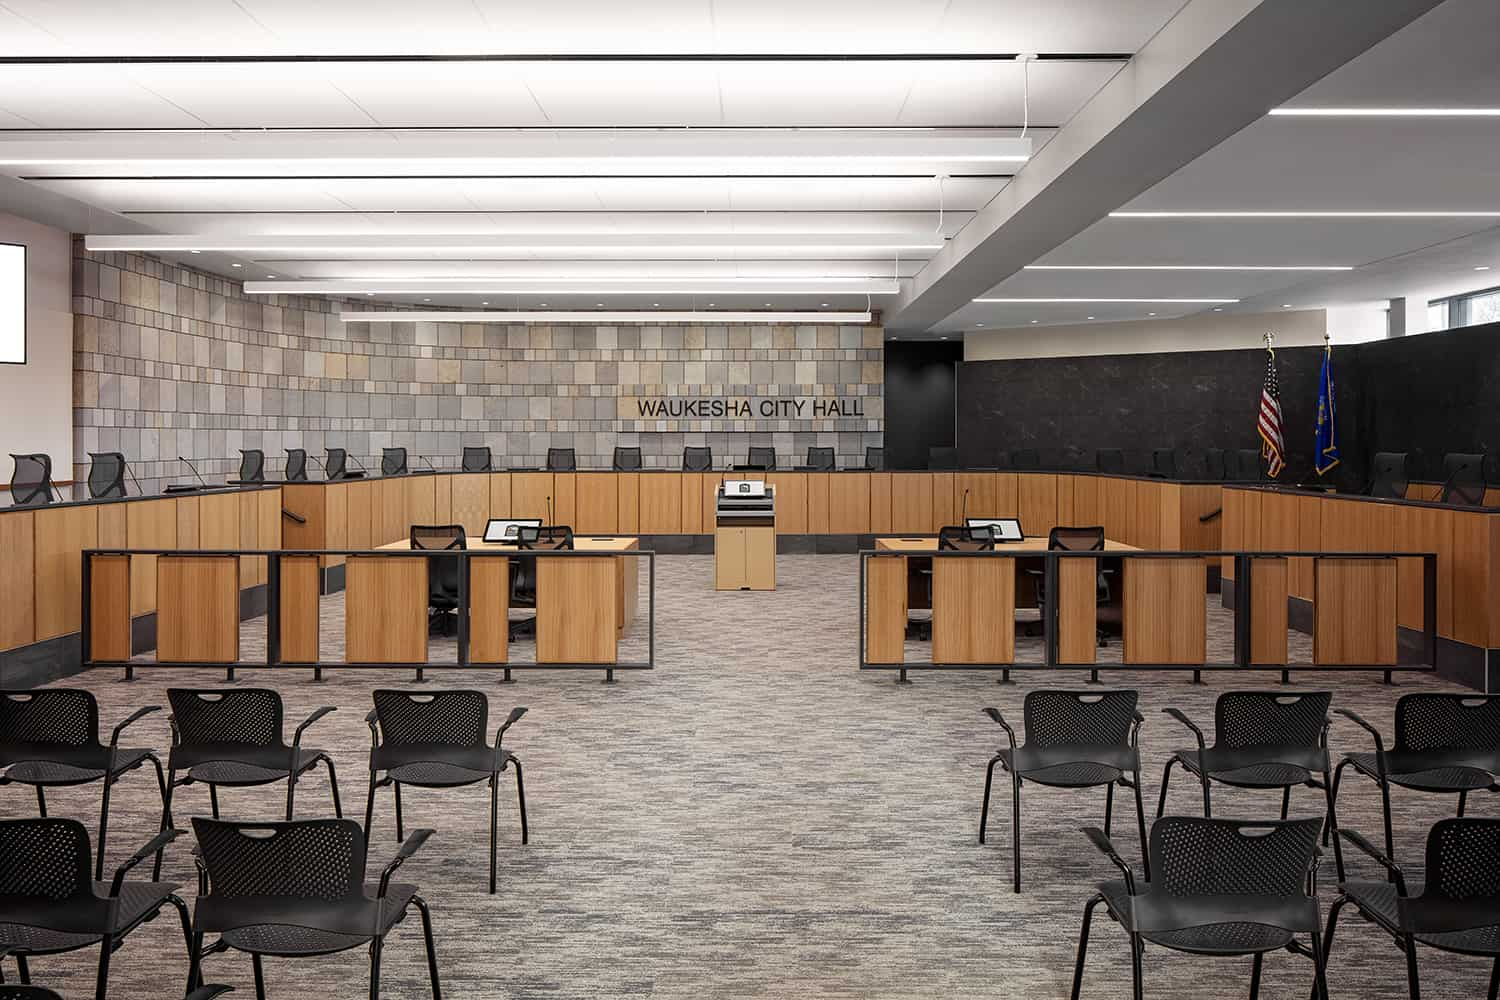 Moveable chairs and spacious seating inside the court room chambers.